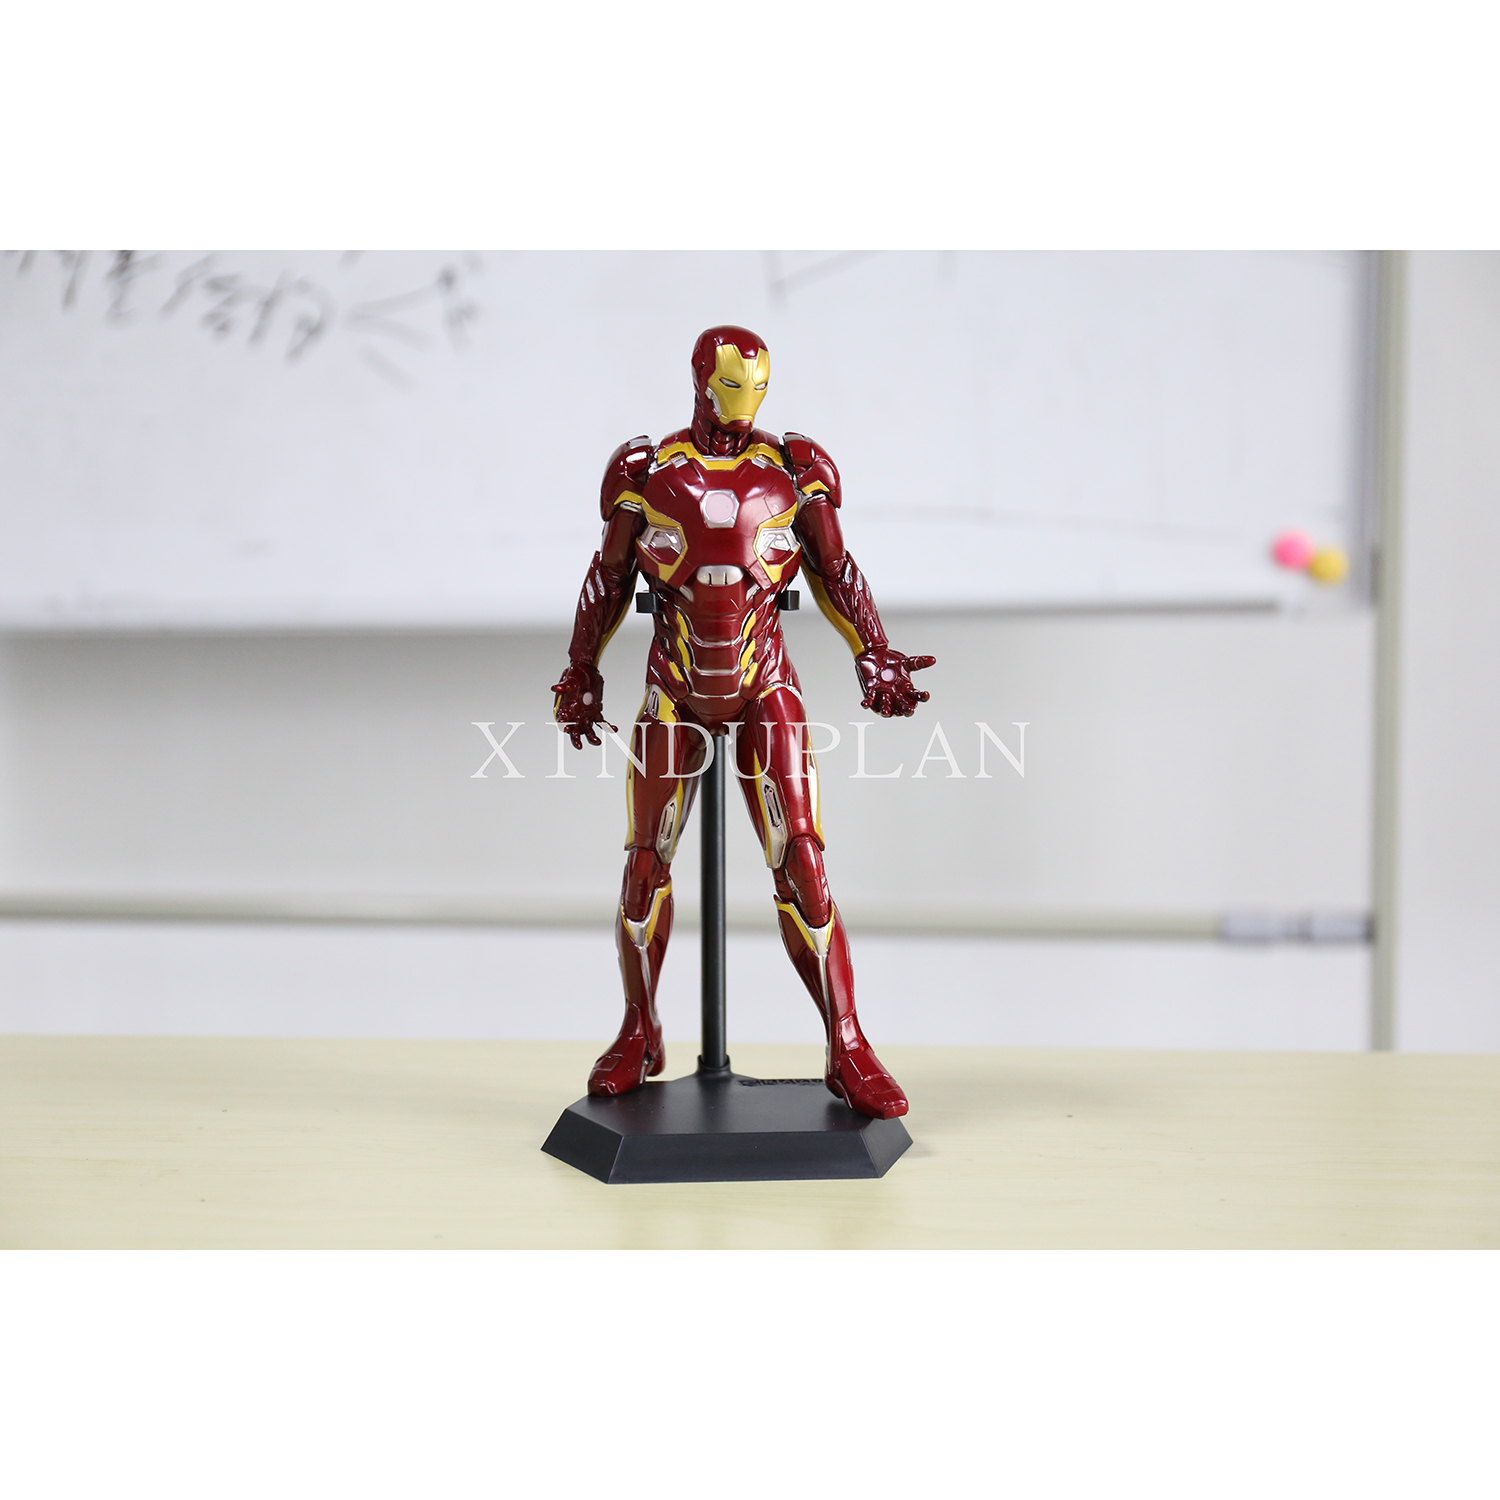 XINDUPLAN Marvel Shield iron Man Avengers Age of Ultron MK45 Light Movable Action Figure Toys 30cm Collection Model 0777 1 6 avengers age of ultron scarlet witch action figure battle version full set figures collection model toys